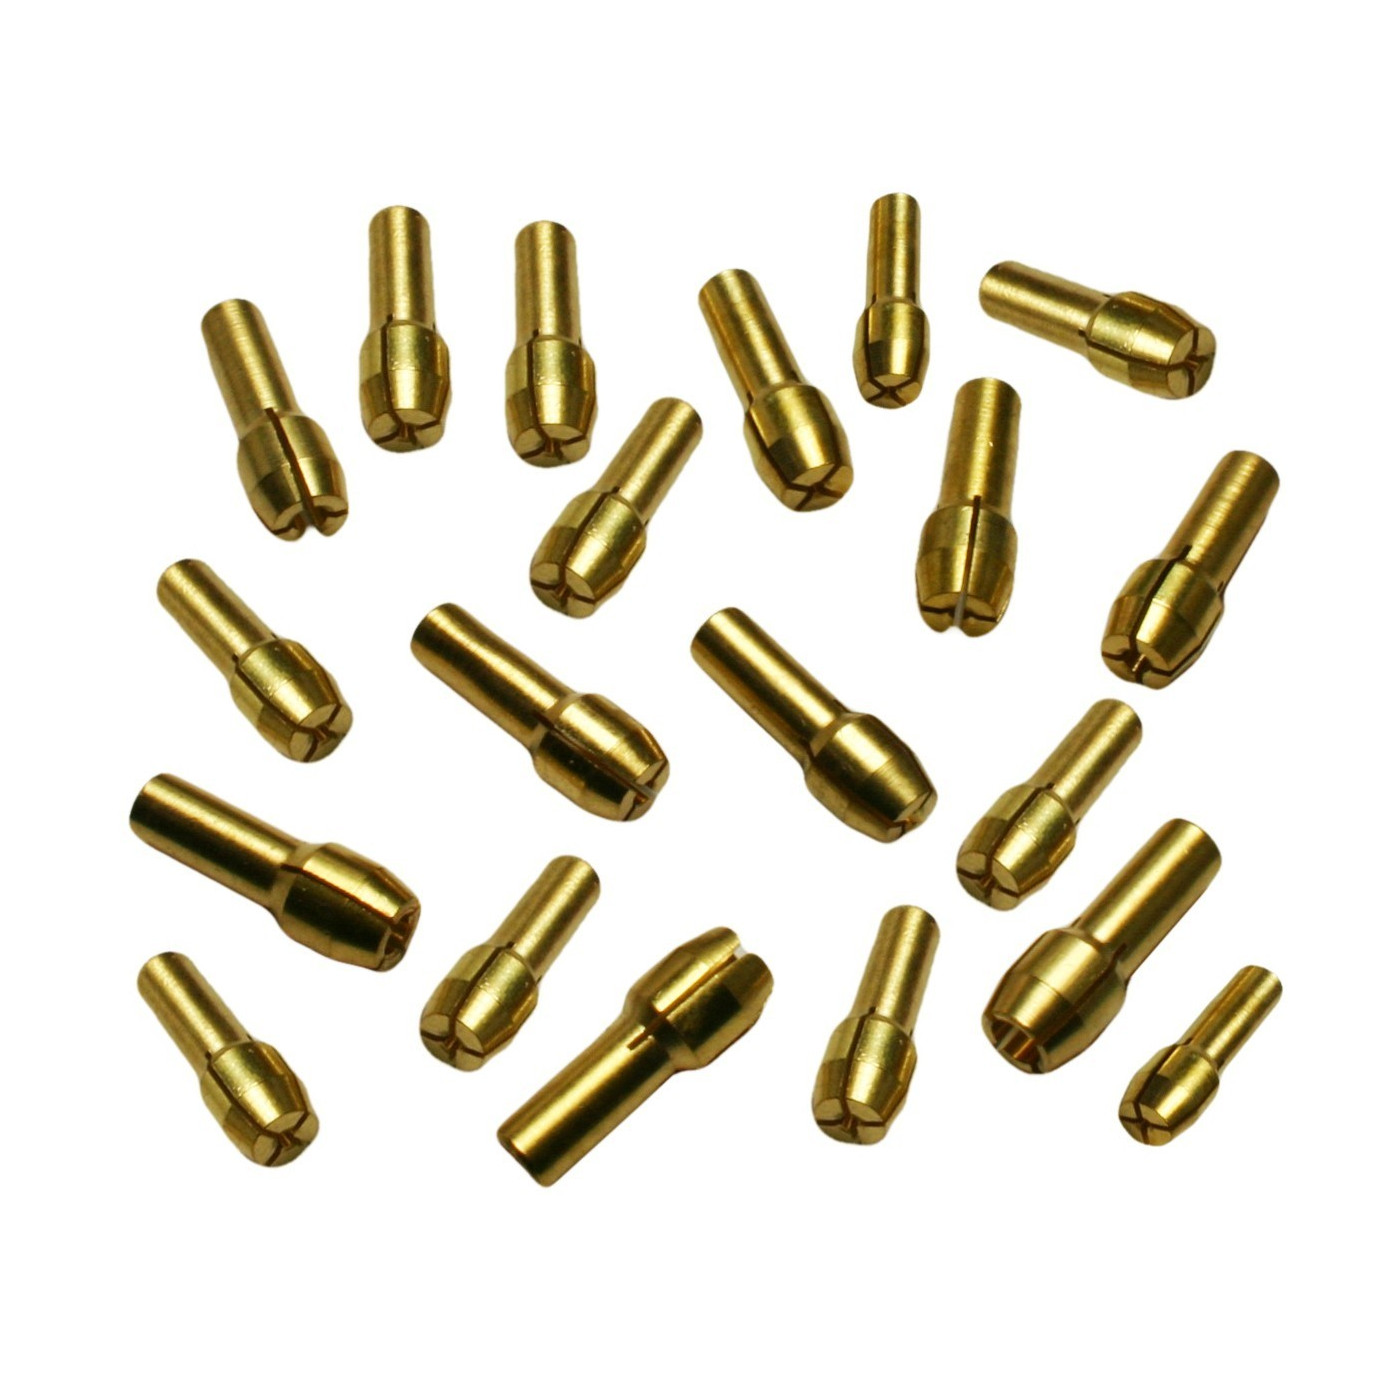 Collet chucks (10 pcs) for dremel like tools (4.3 mm)